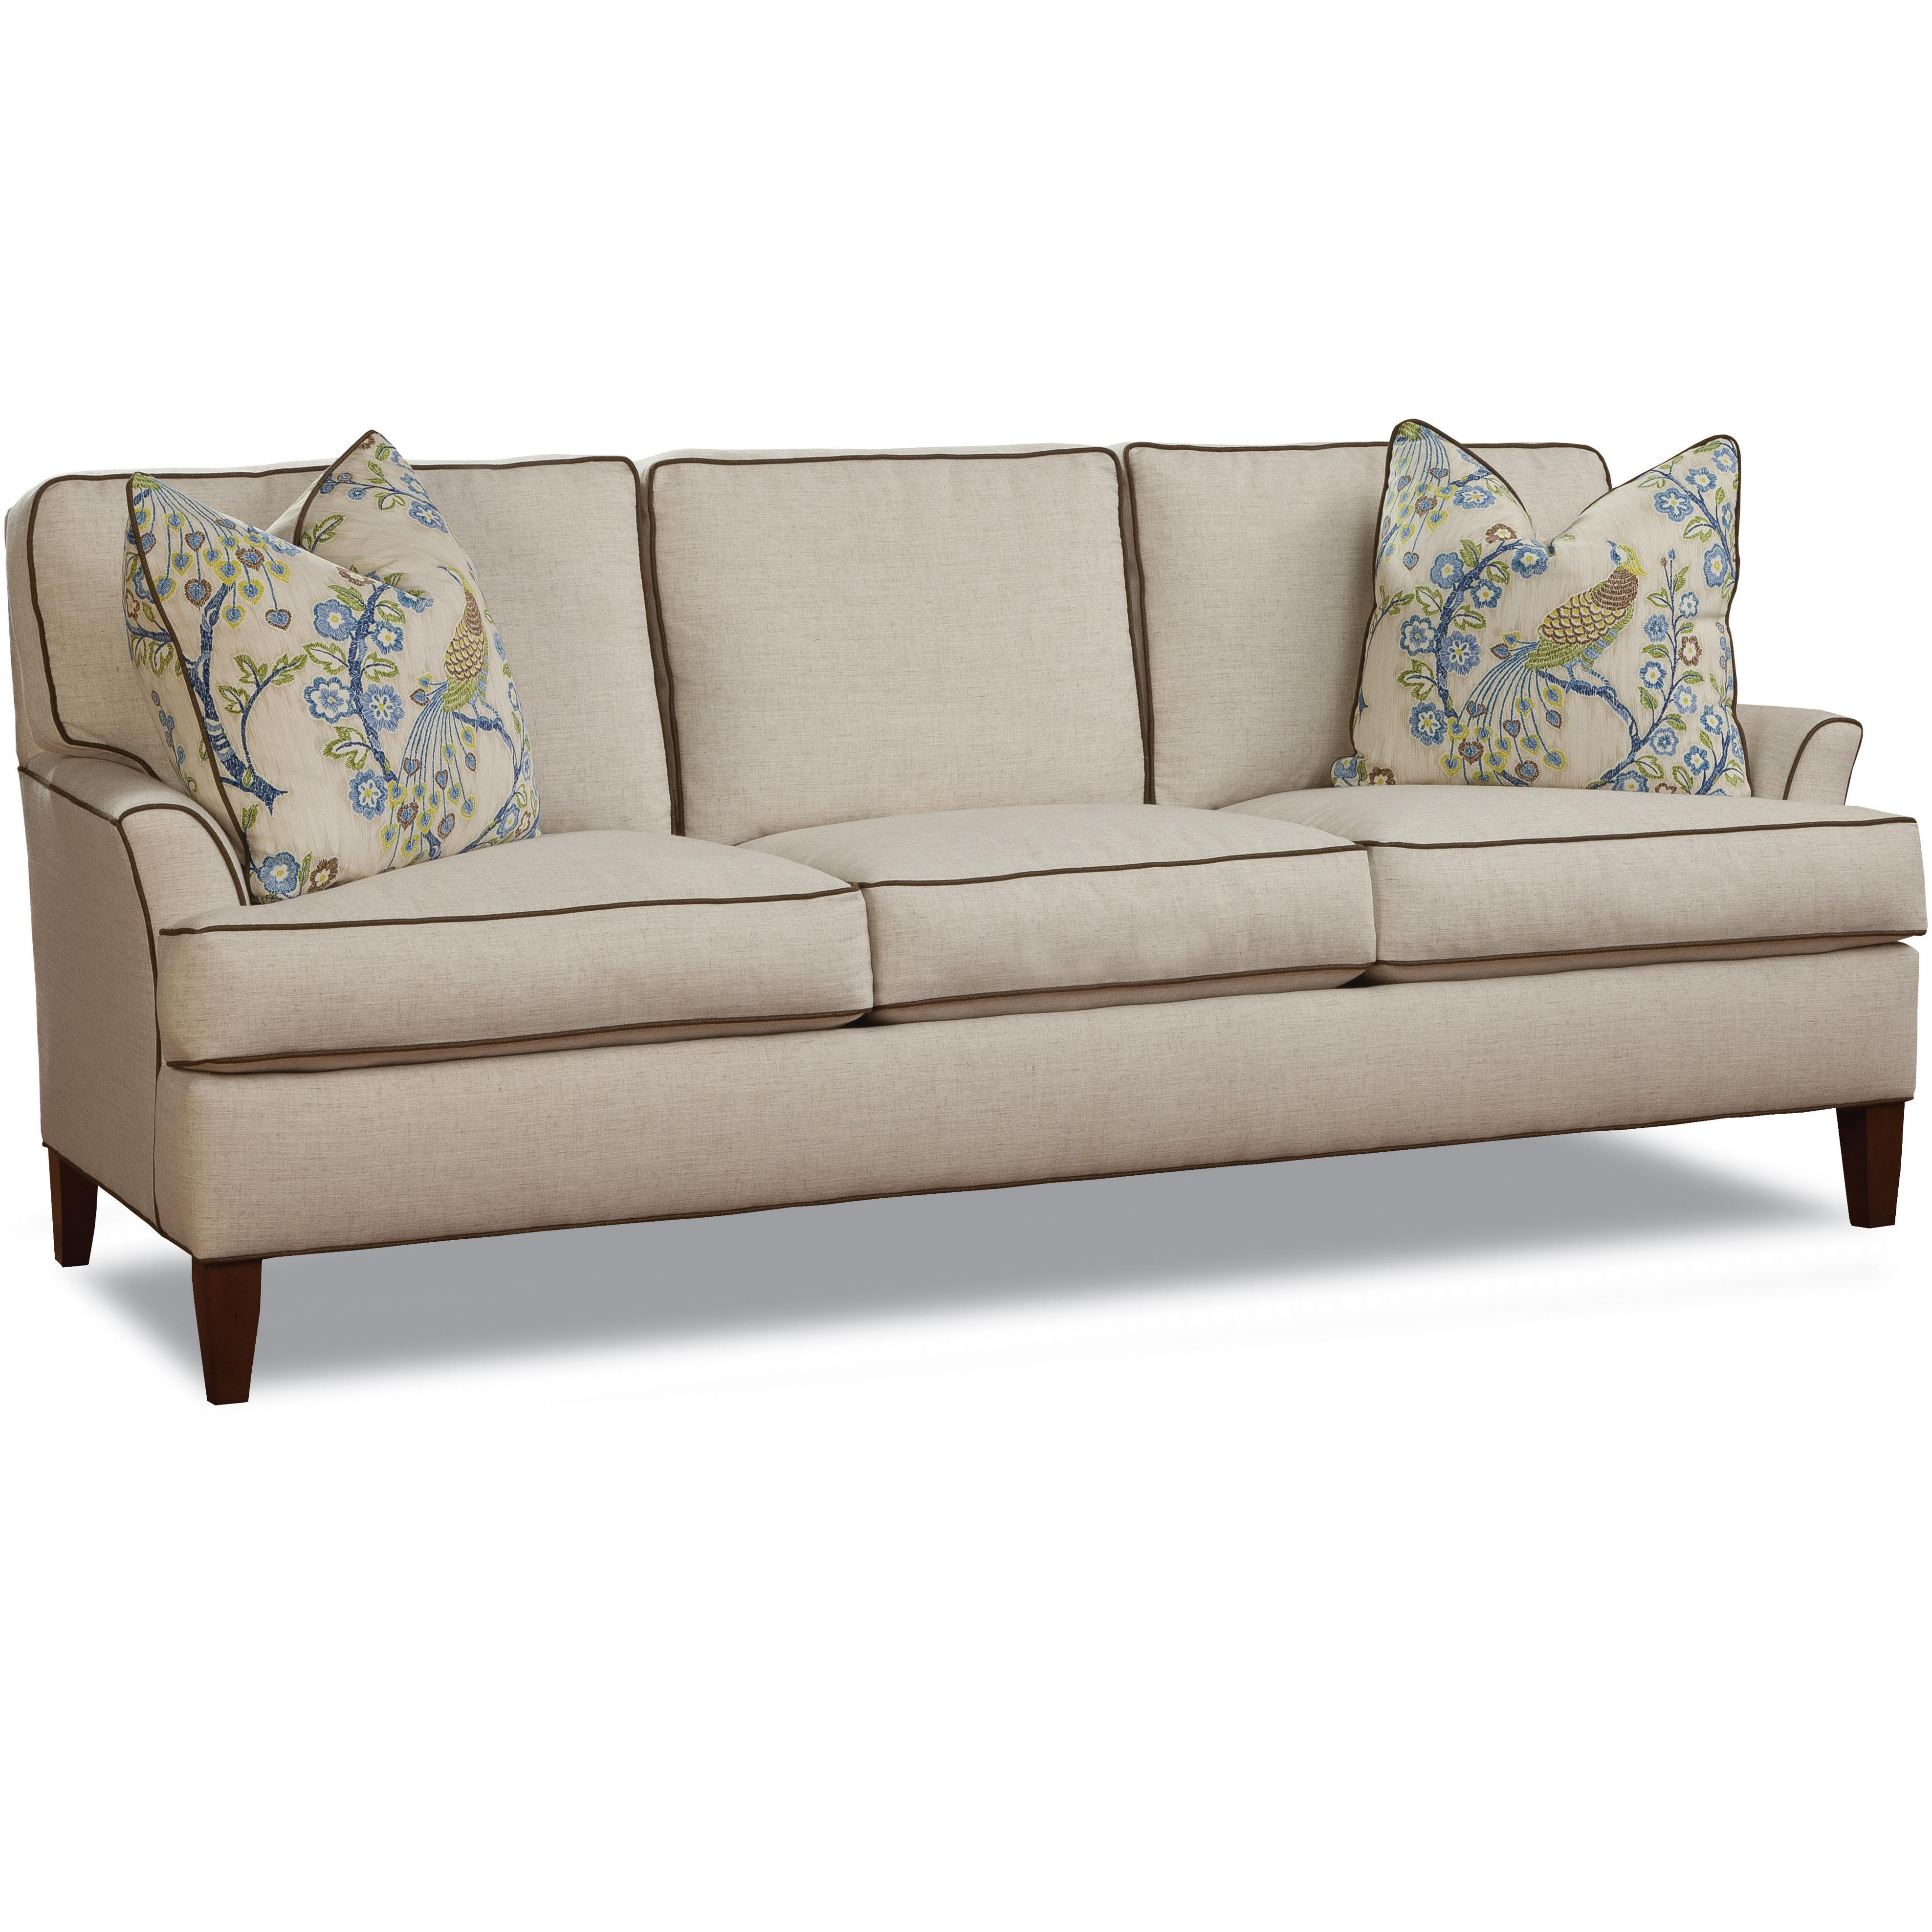 2031 Transitional Sofa by Geoffrey Alexander at Sprintz Furniture